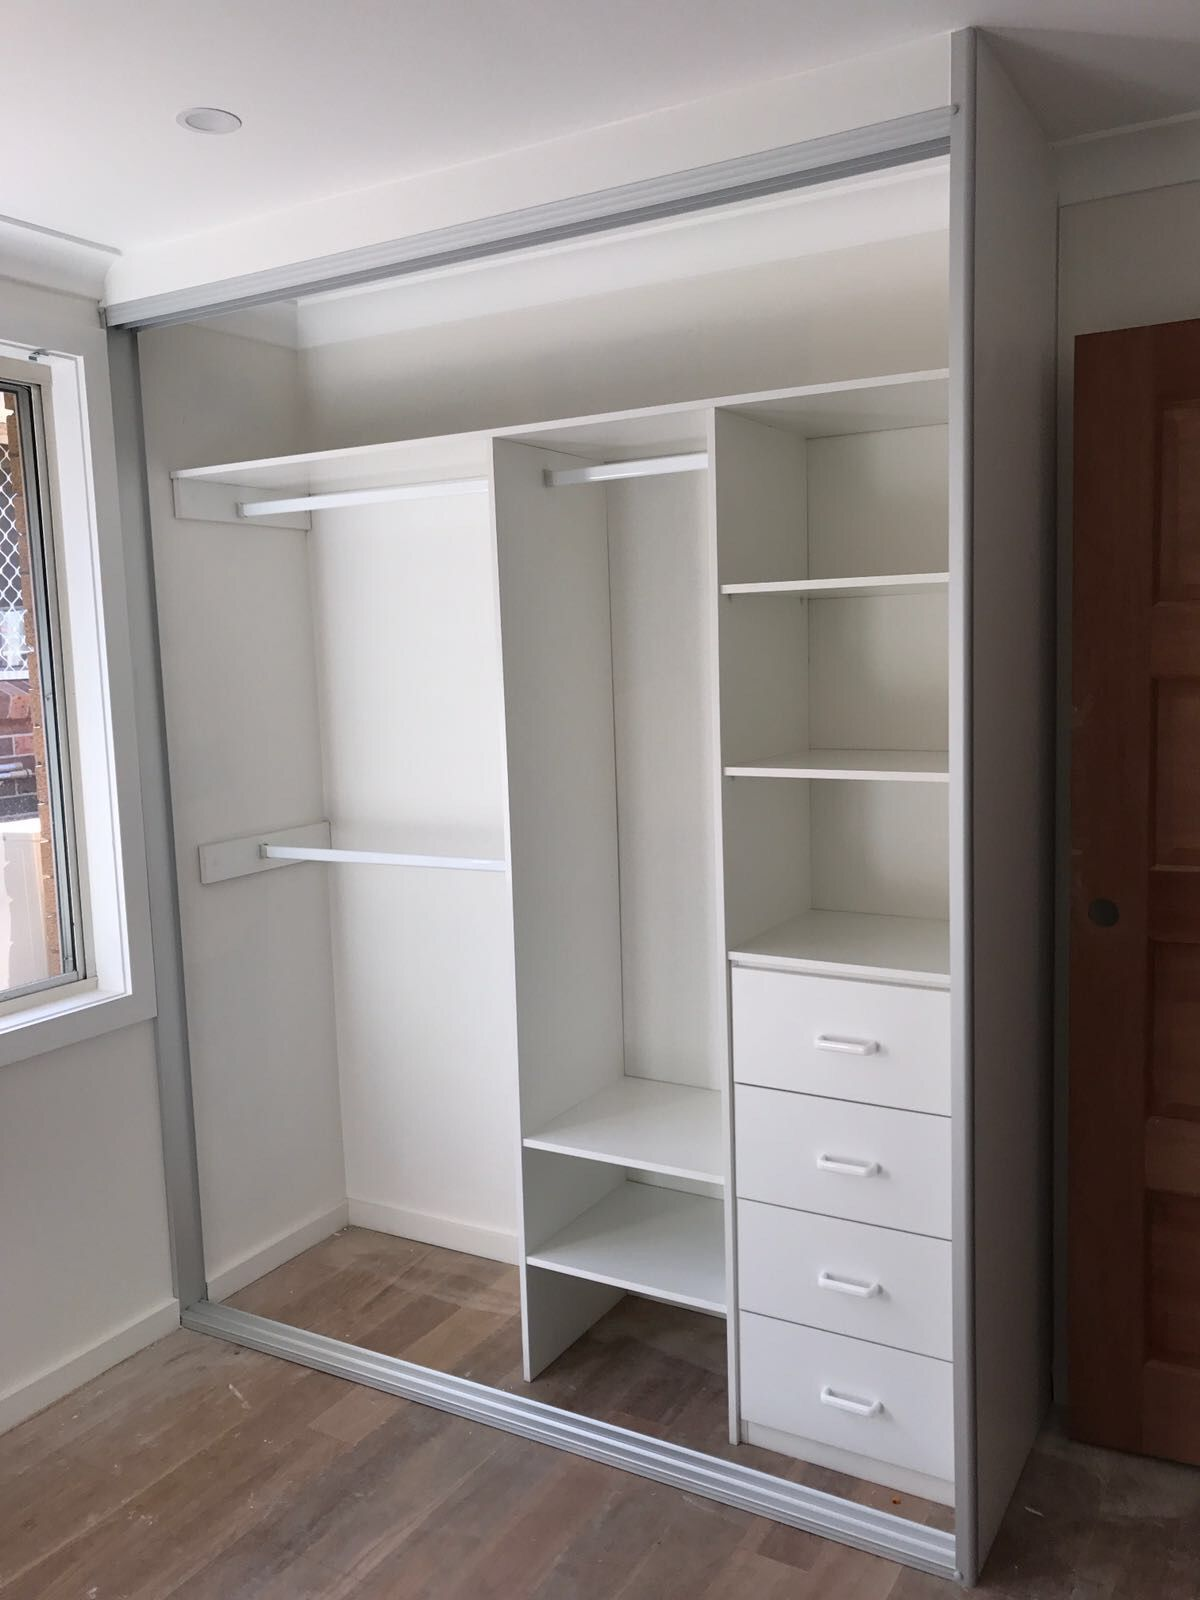 Storage solutions – Fantastic Built in Wardrobes | Small ...